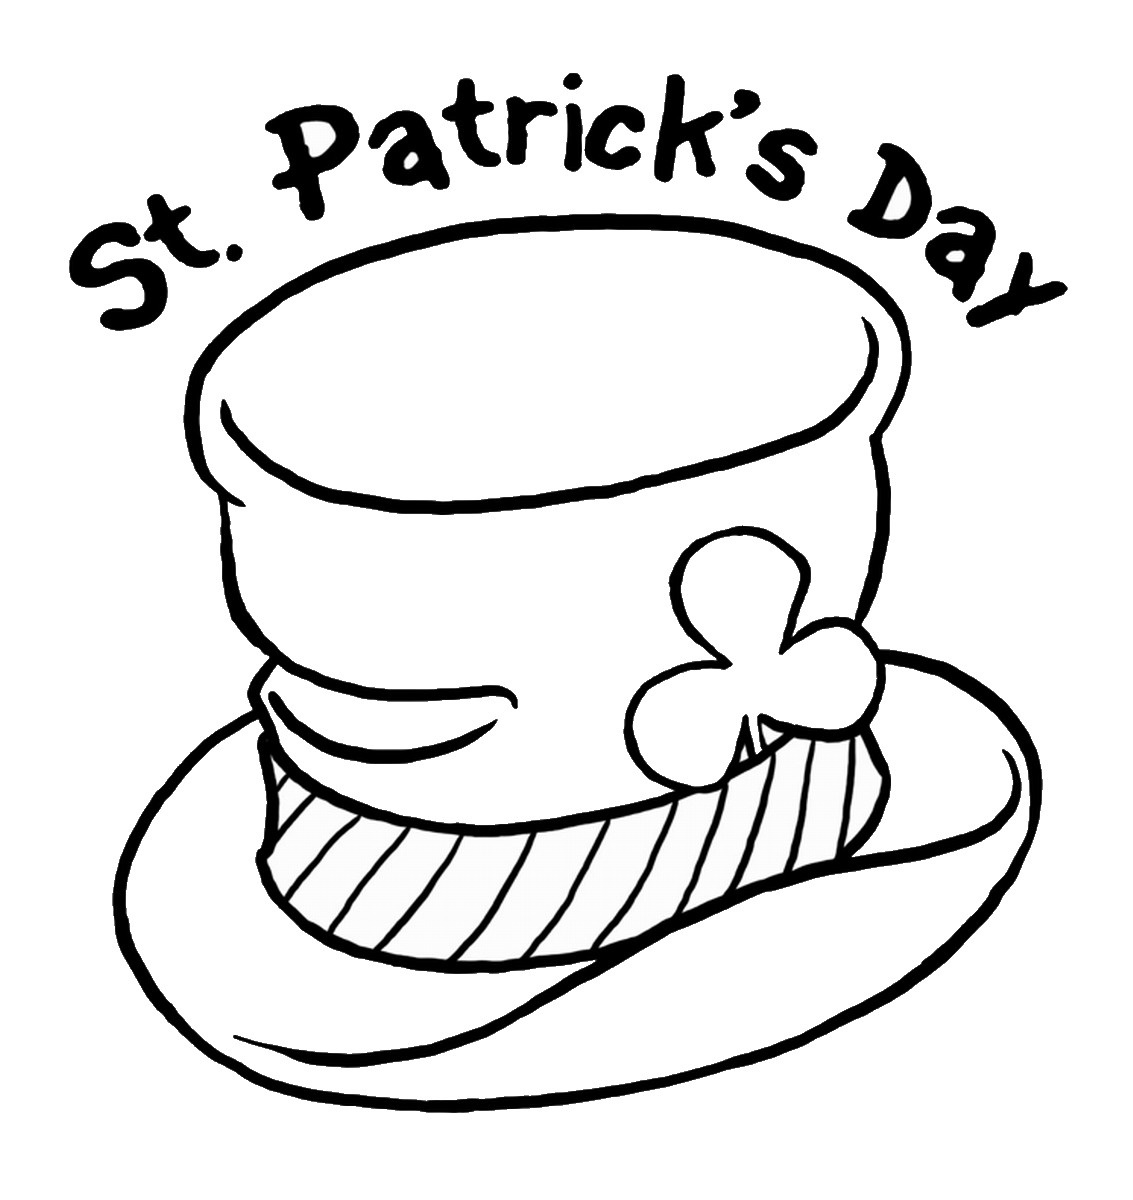 st patrick's day coloring pages 2